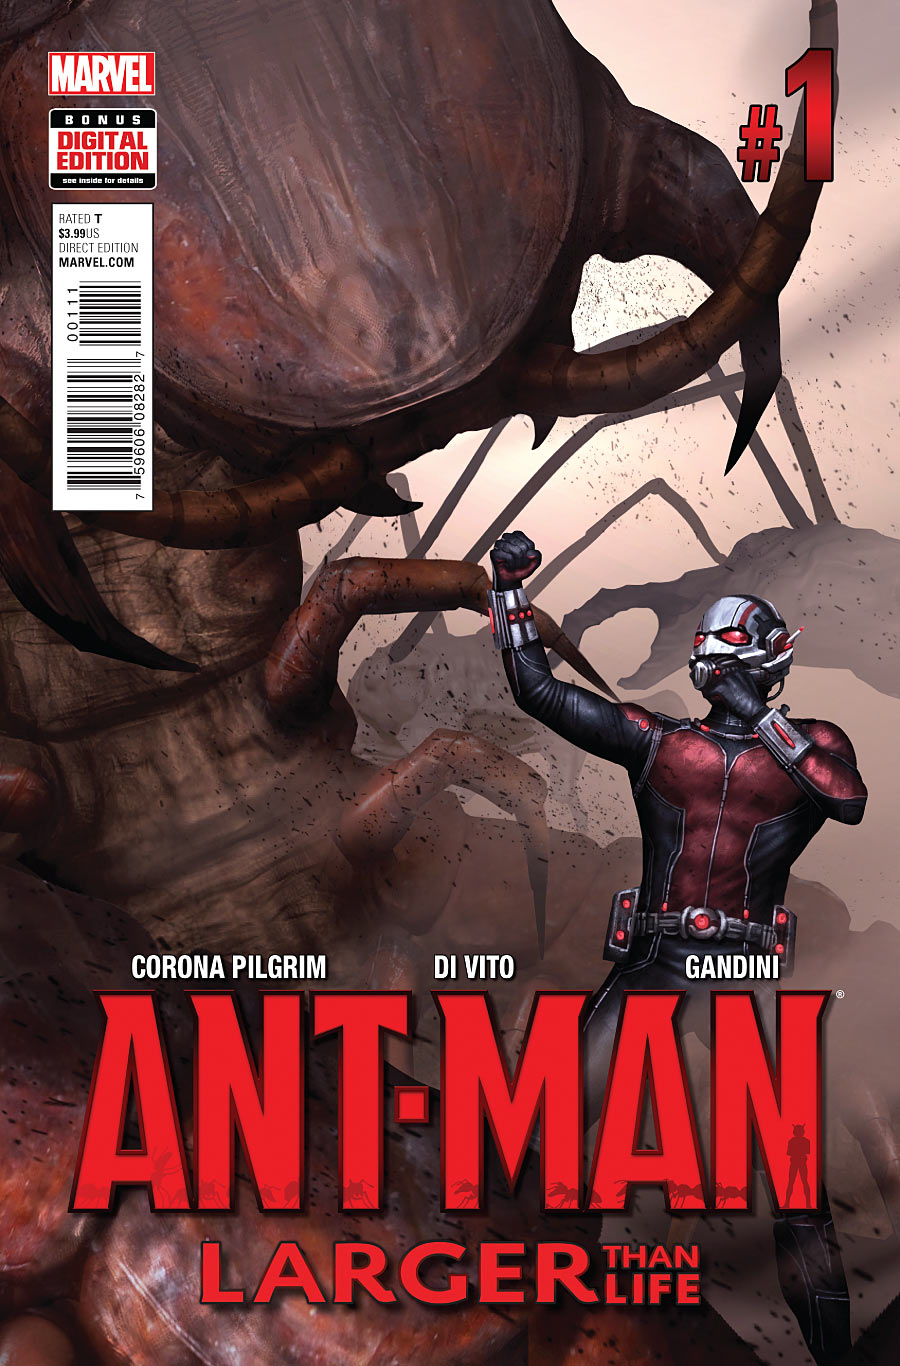 Ant man larger than life